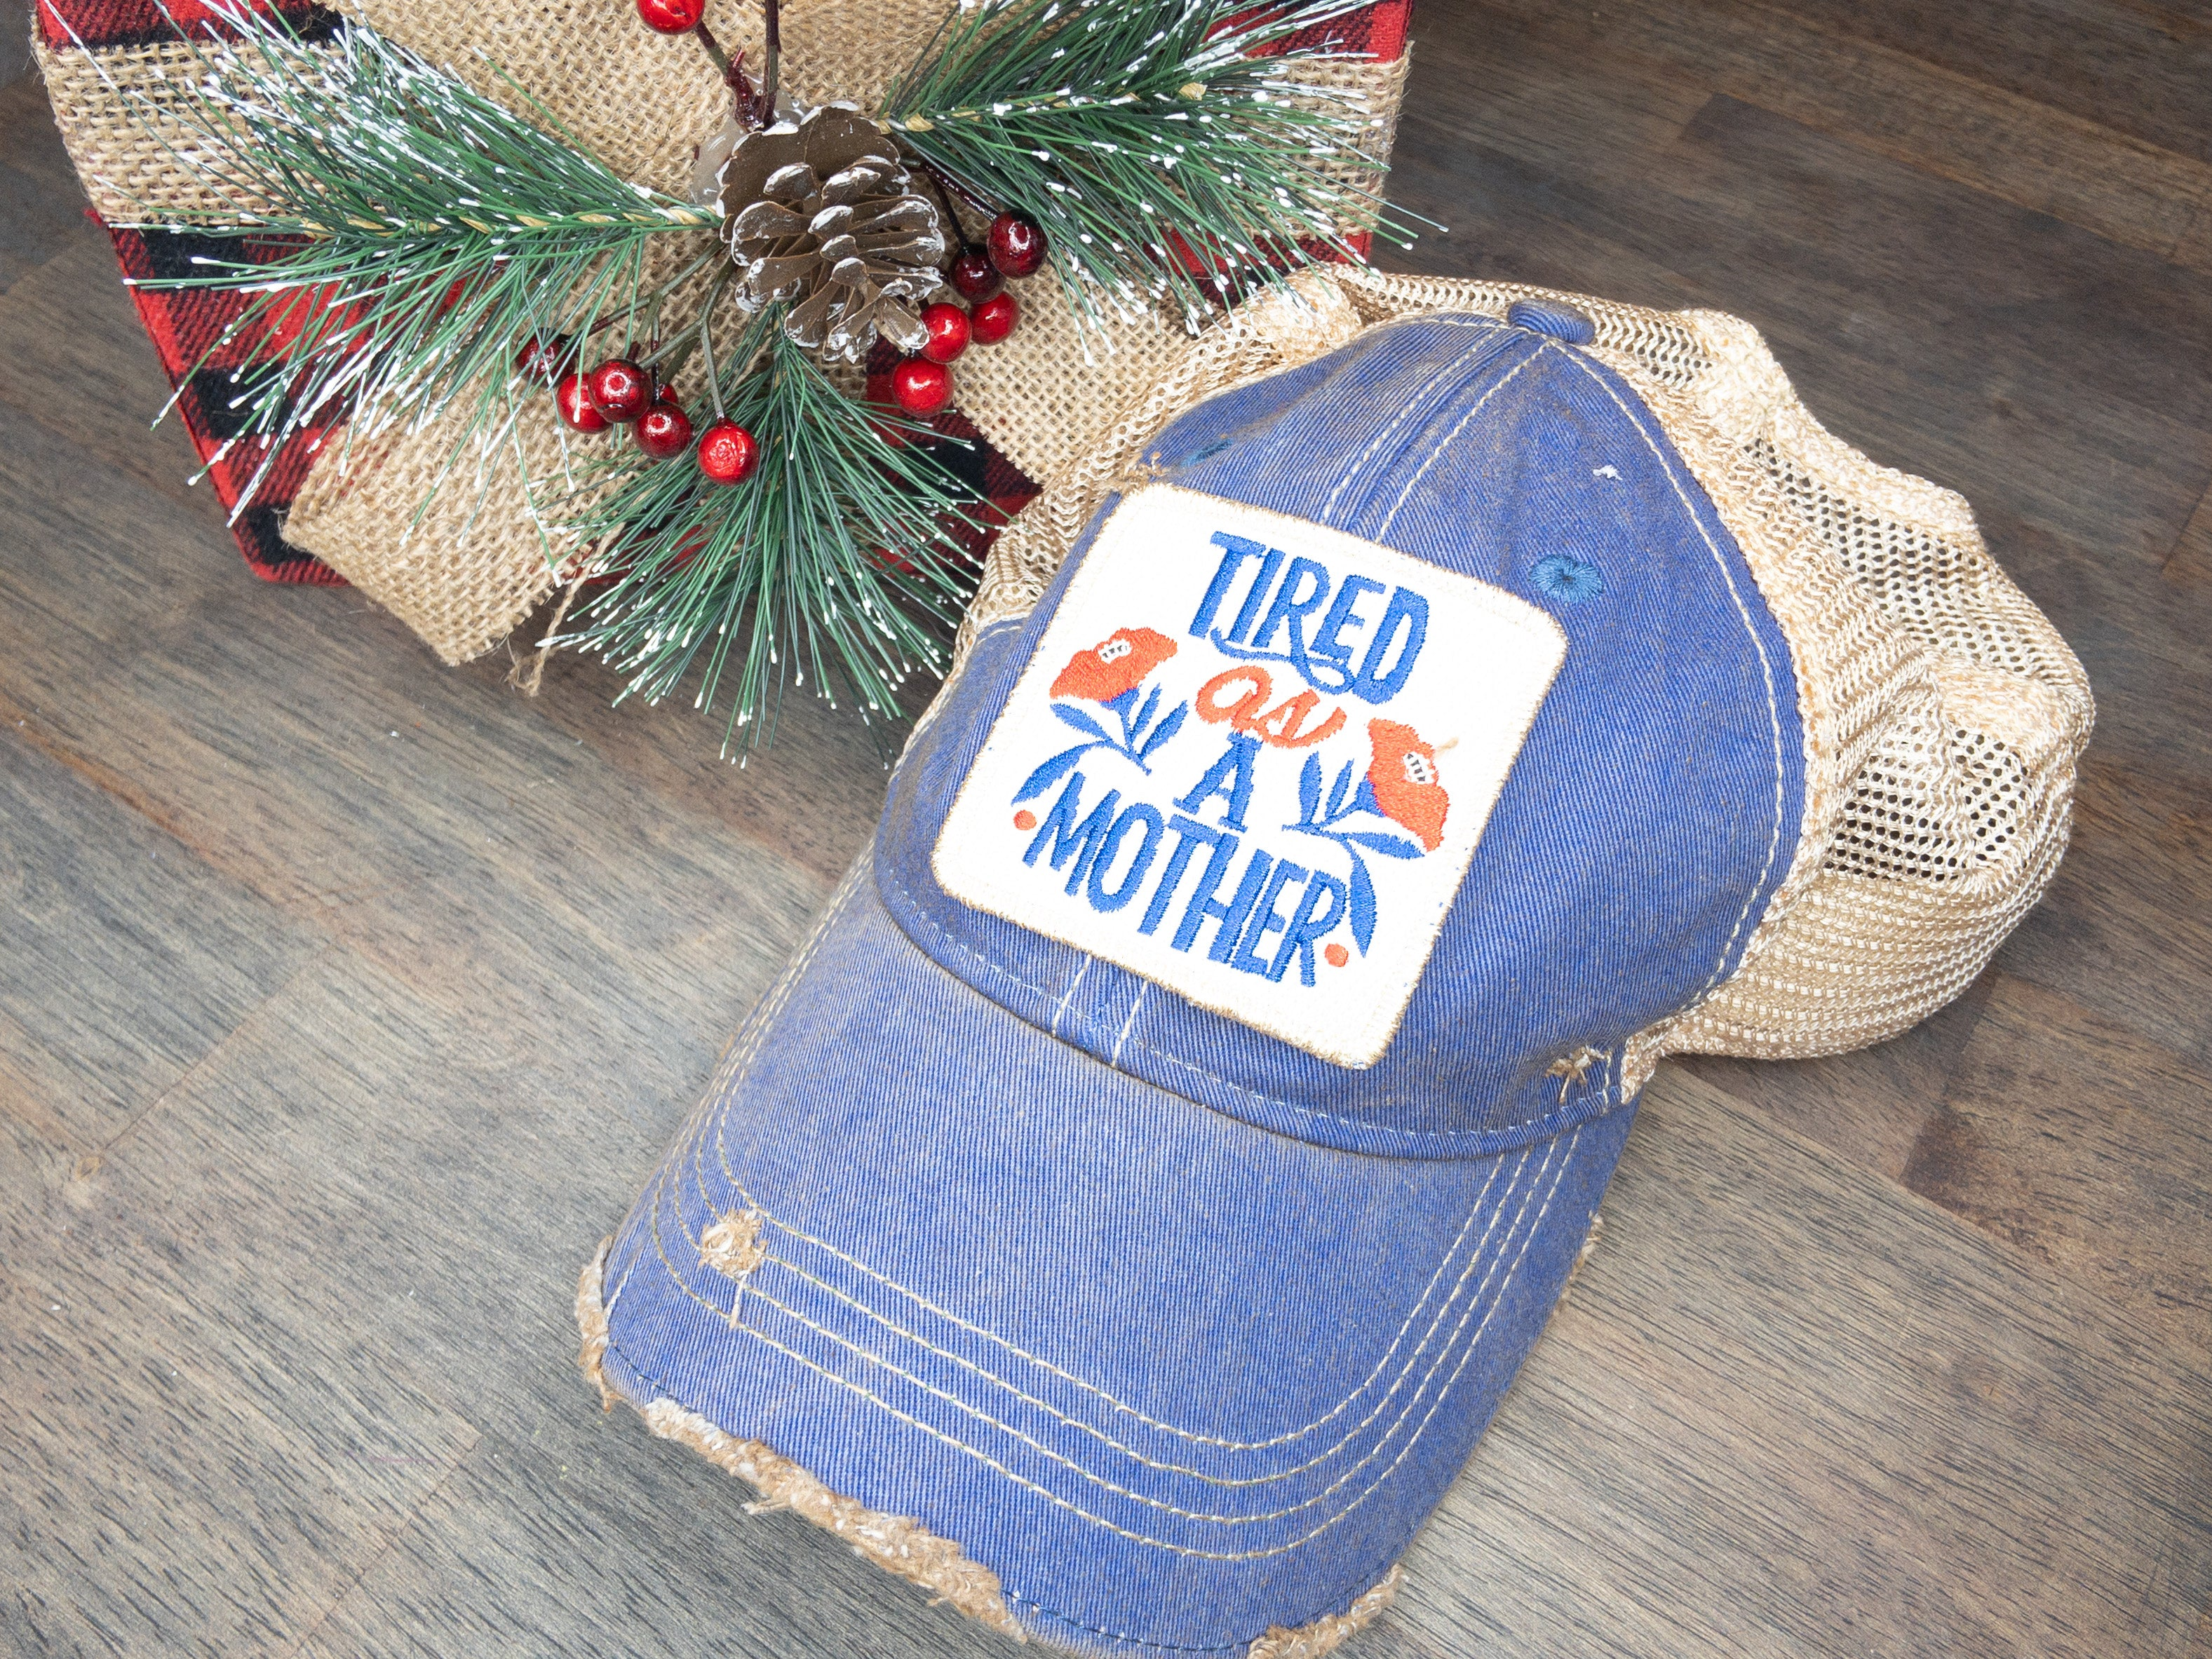 TIRED AS A MOTHER Distressed Ball Cap